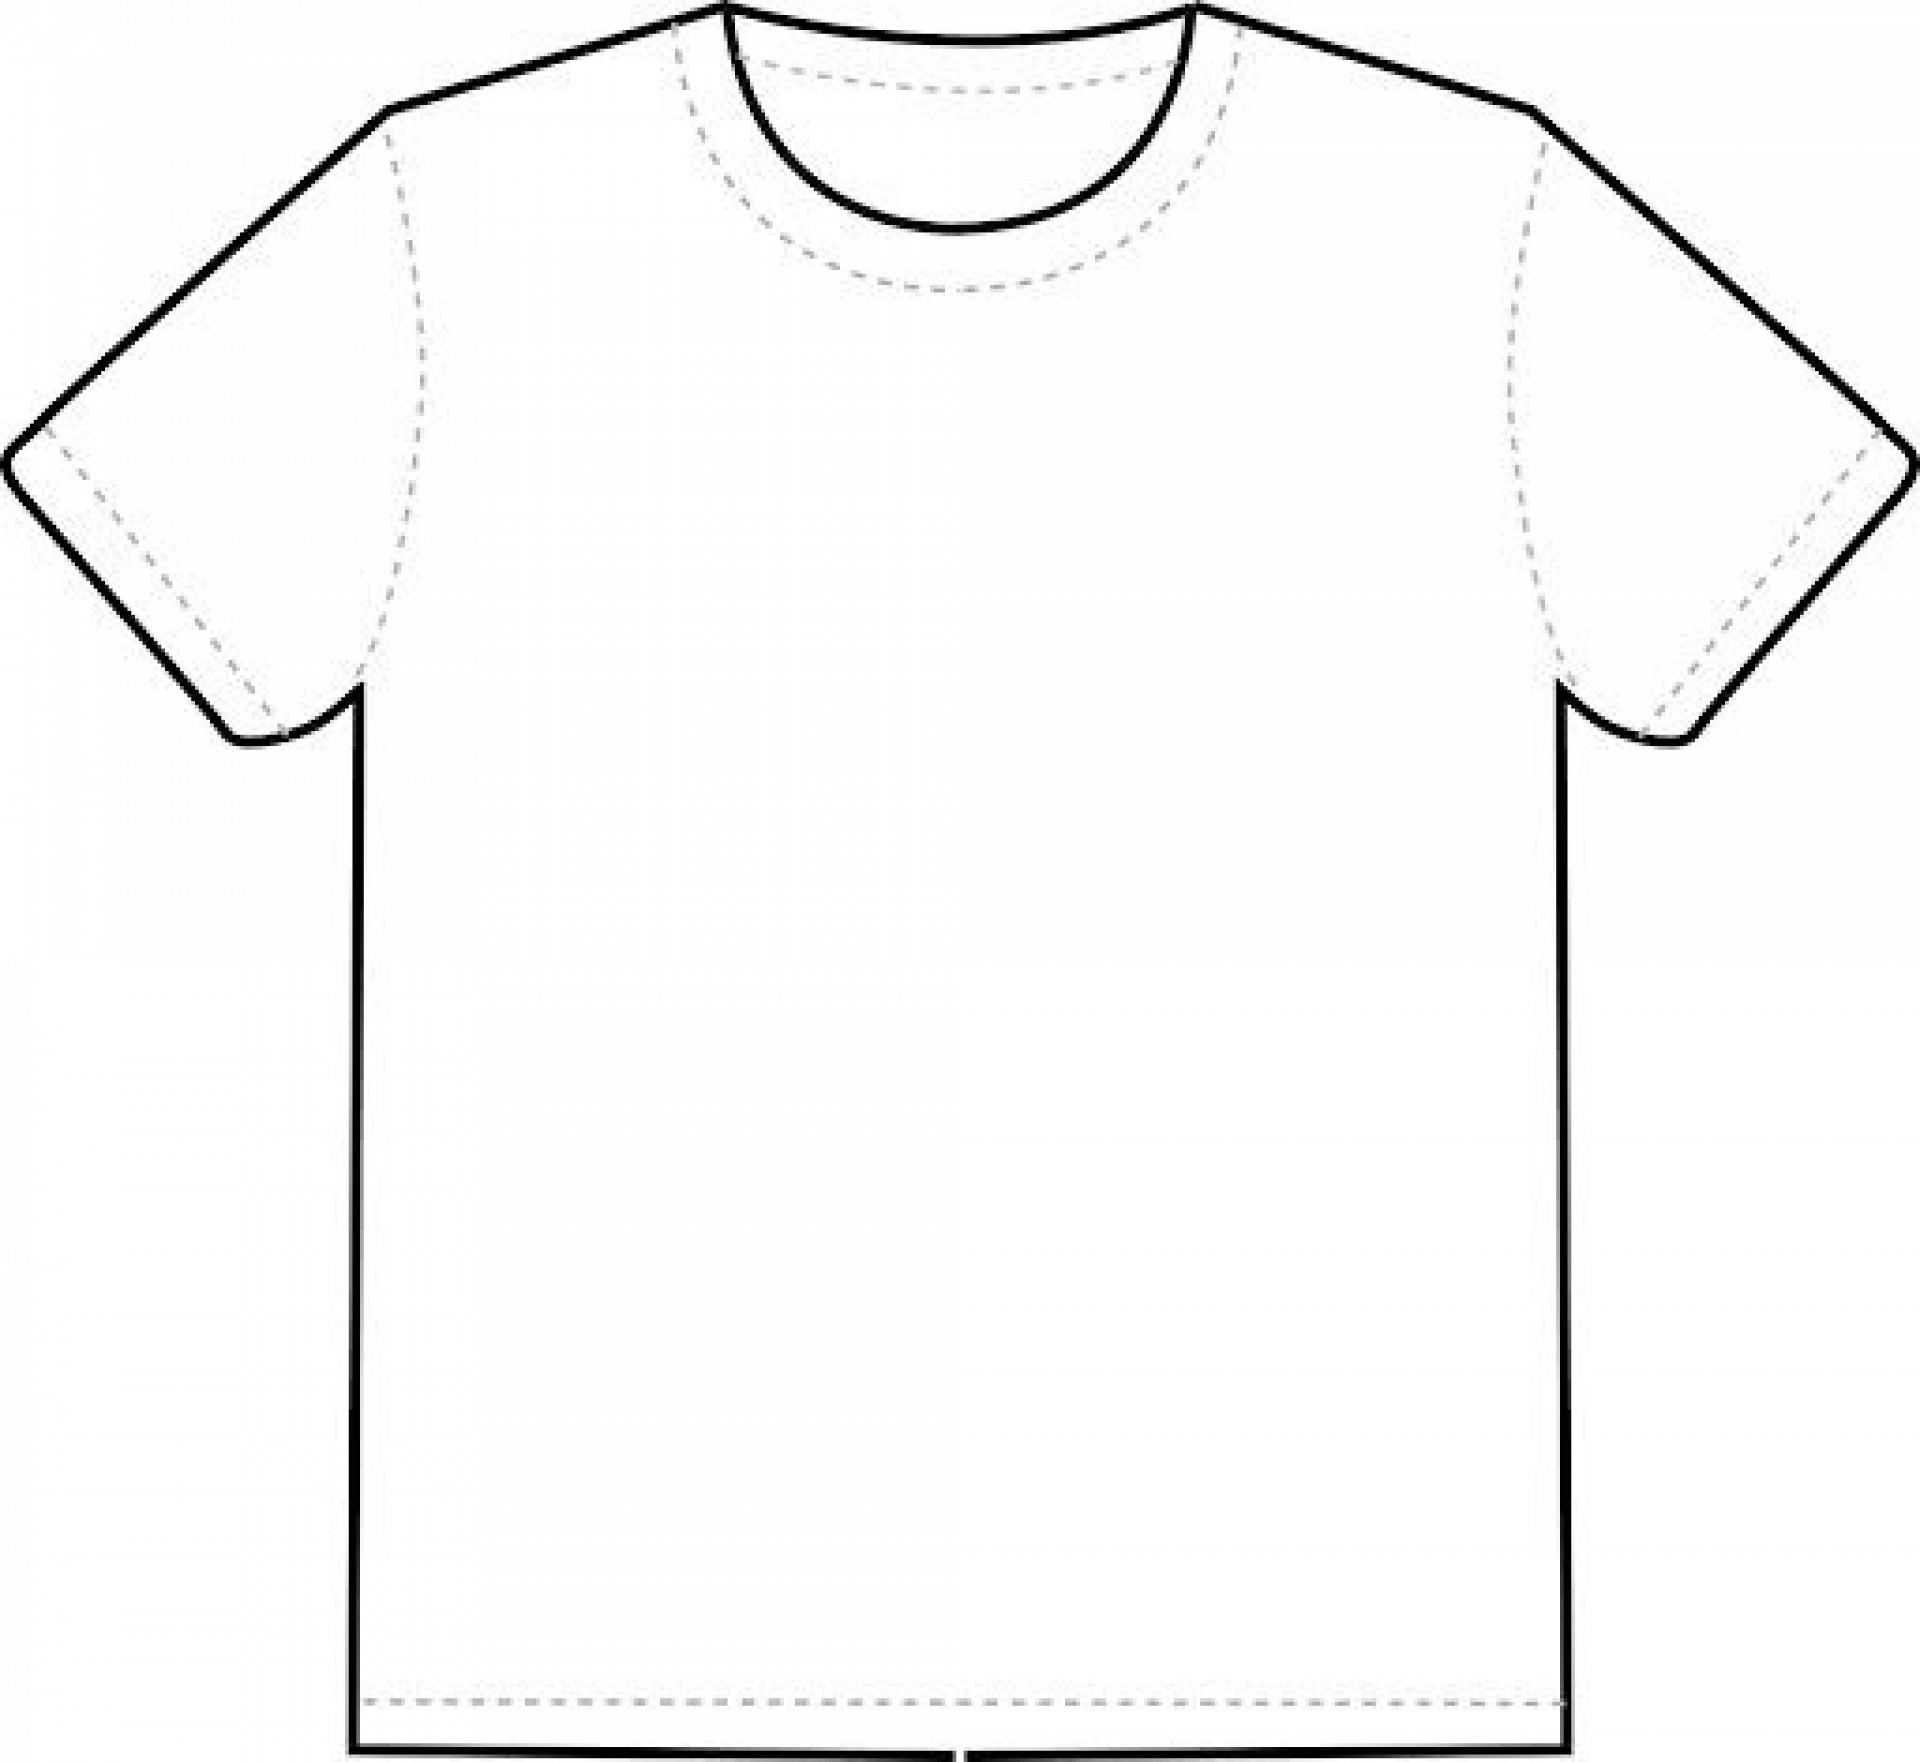 007 Frightening Blank Tee Shirt Template Photo  T Design Pdf Free T-shirt Front And Back Download1920